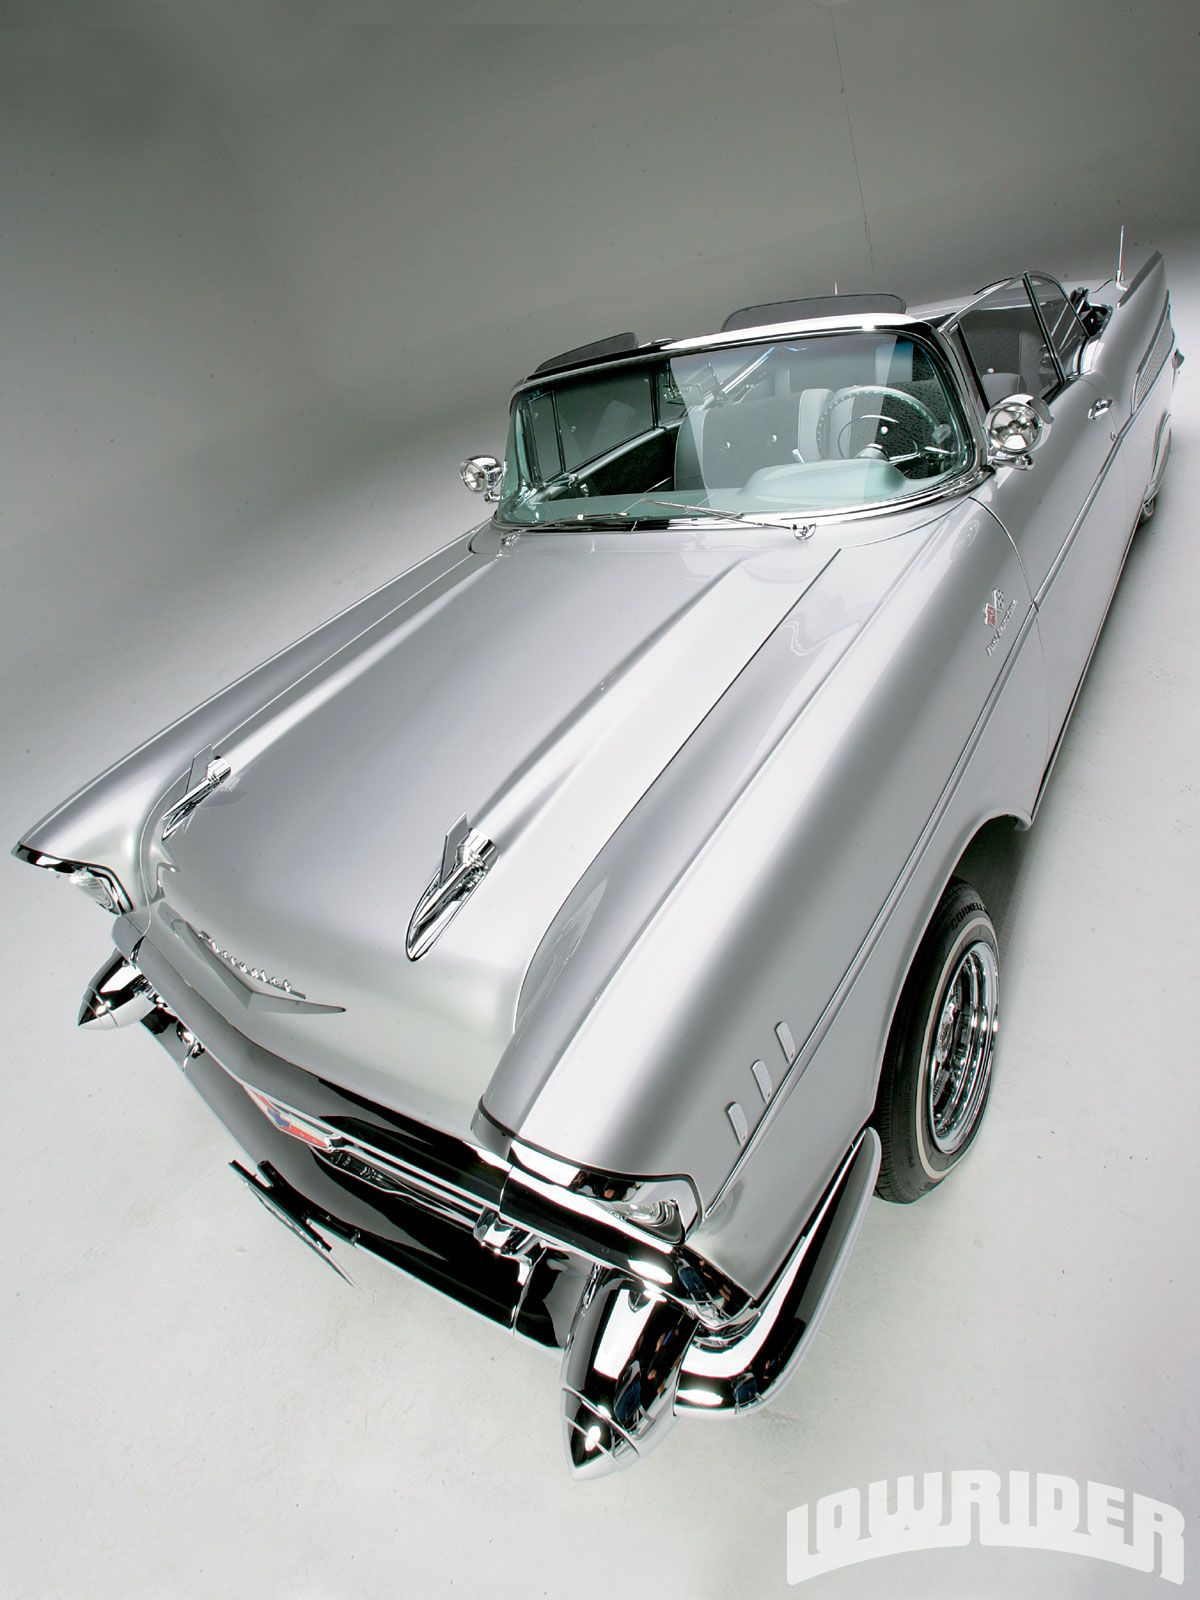 View This 1957 Chevrolet Bel Air Convertible Right Rear High Chevy Impala Lowrider Photo 3 Growing Up